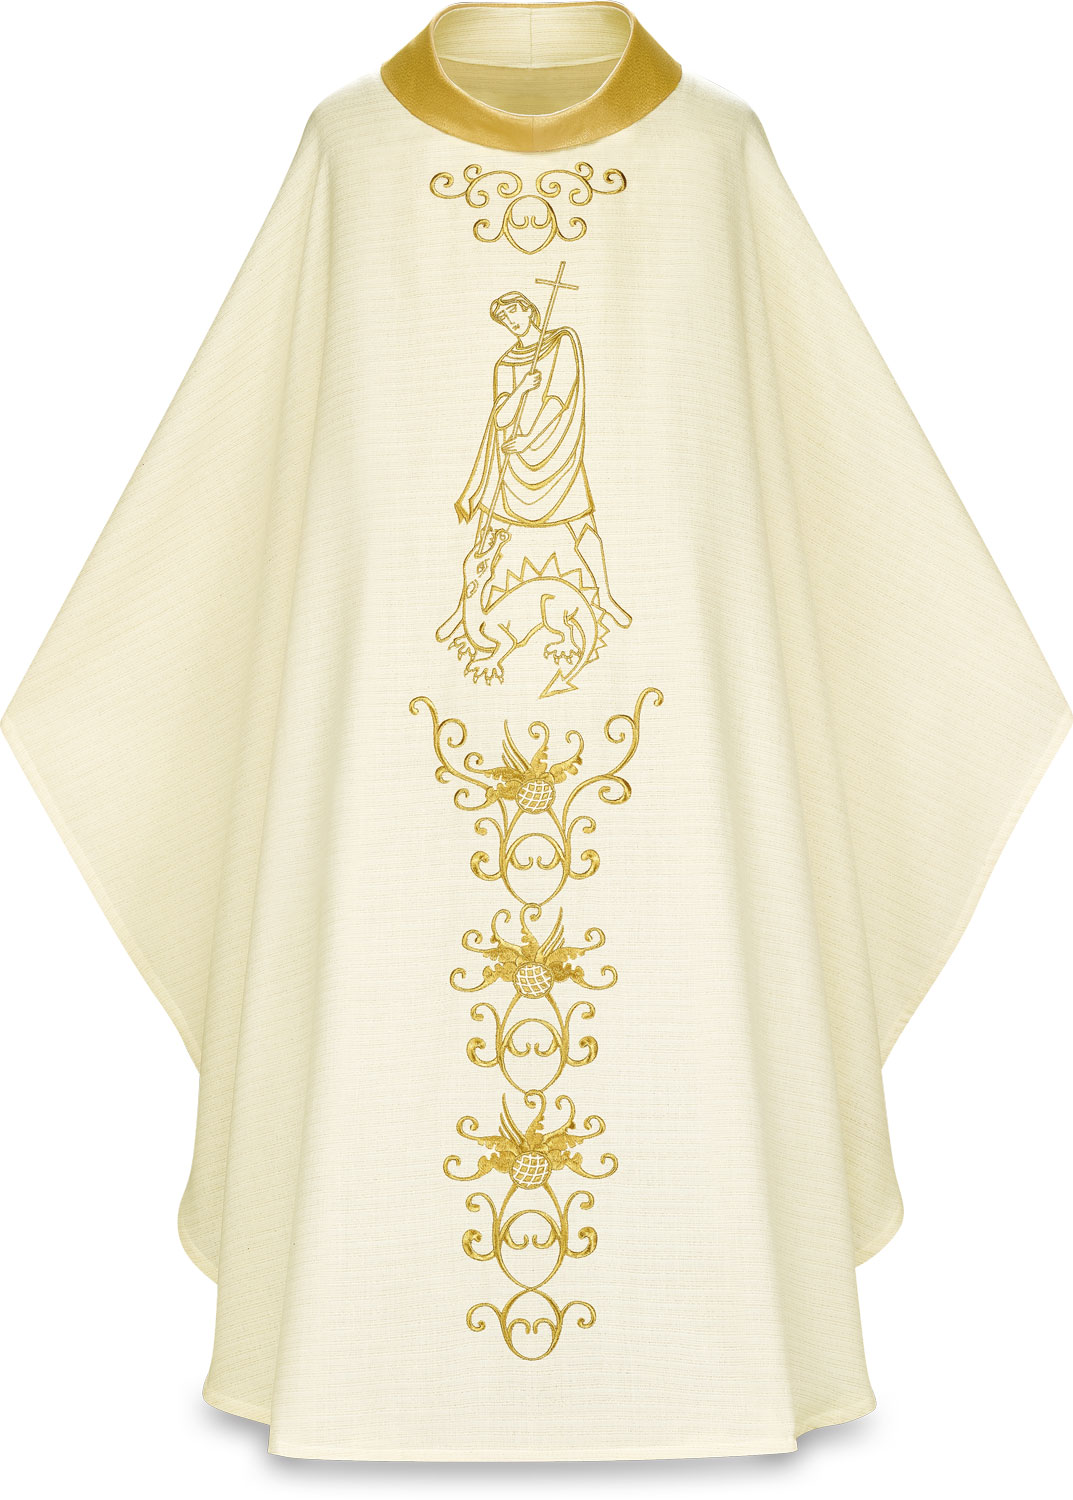 Chasuble | Saint George | 5232 | Slabbinck